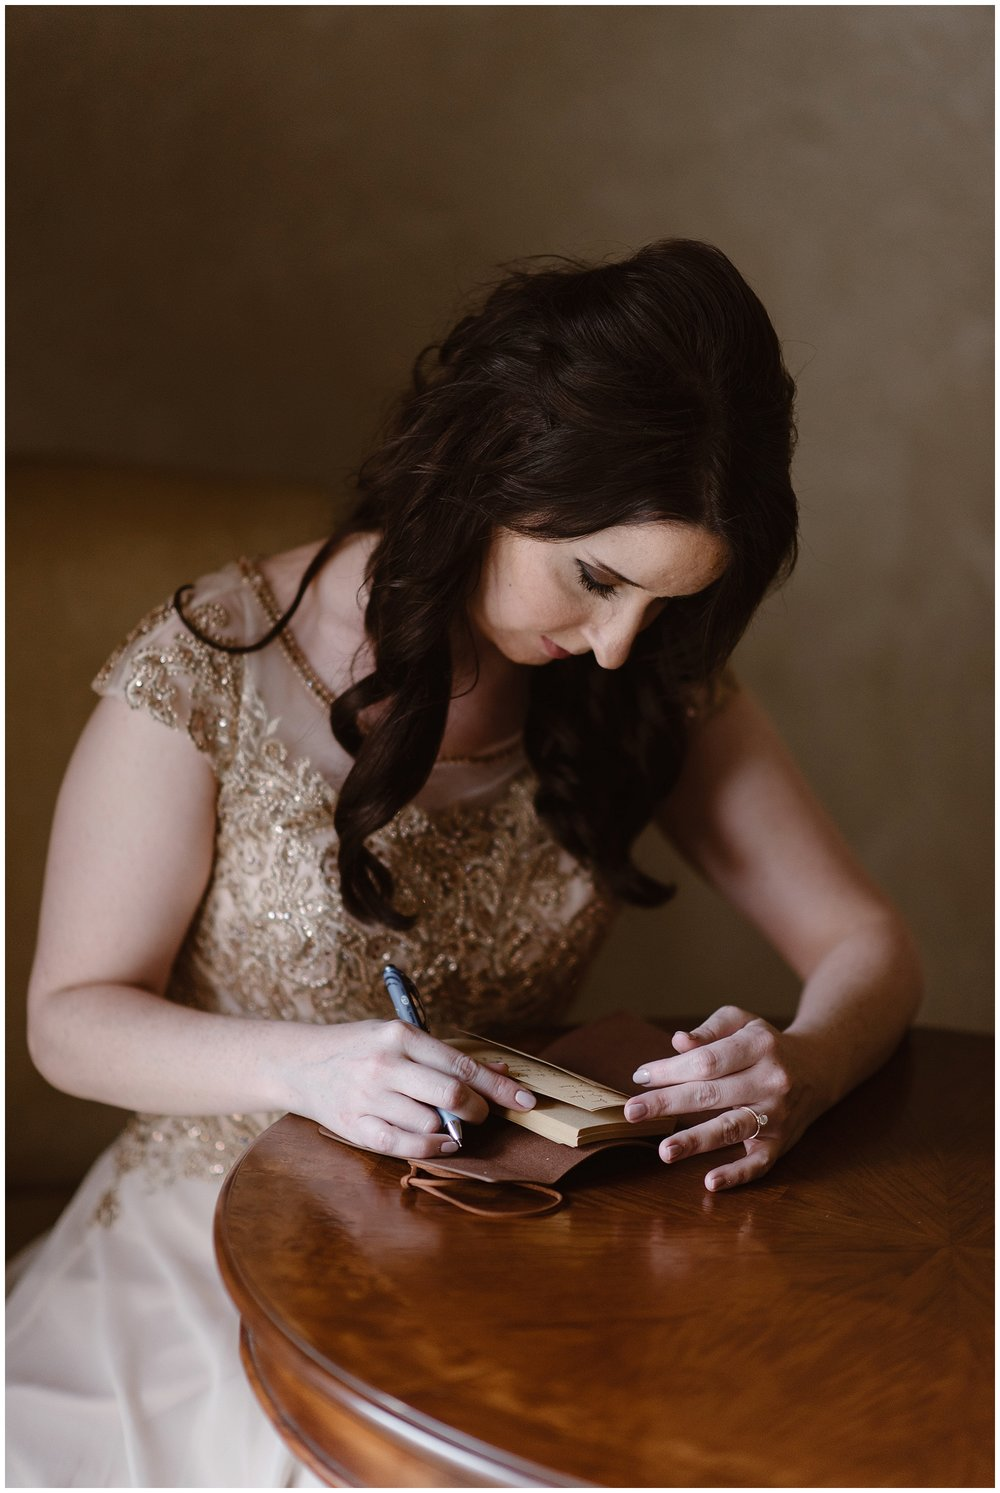 Marlayna writes out her wedding vows by hand before her elopement ceremony at the snowy Sapphire Point in Dillon, Colorado. Photo by Adventure Instead, Maddie Mae Elopement Photographers.